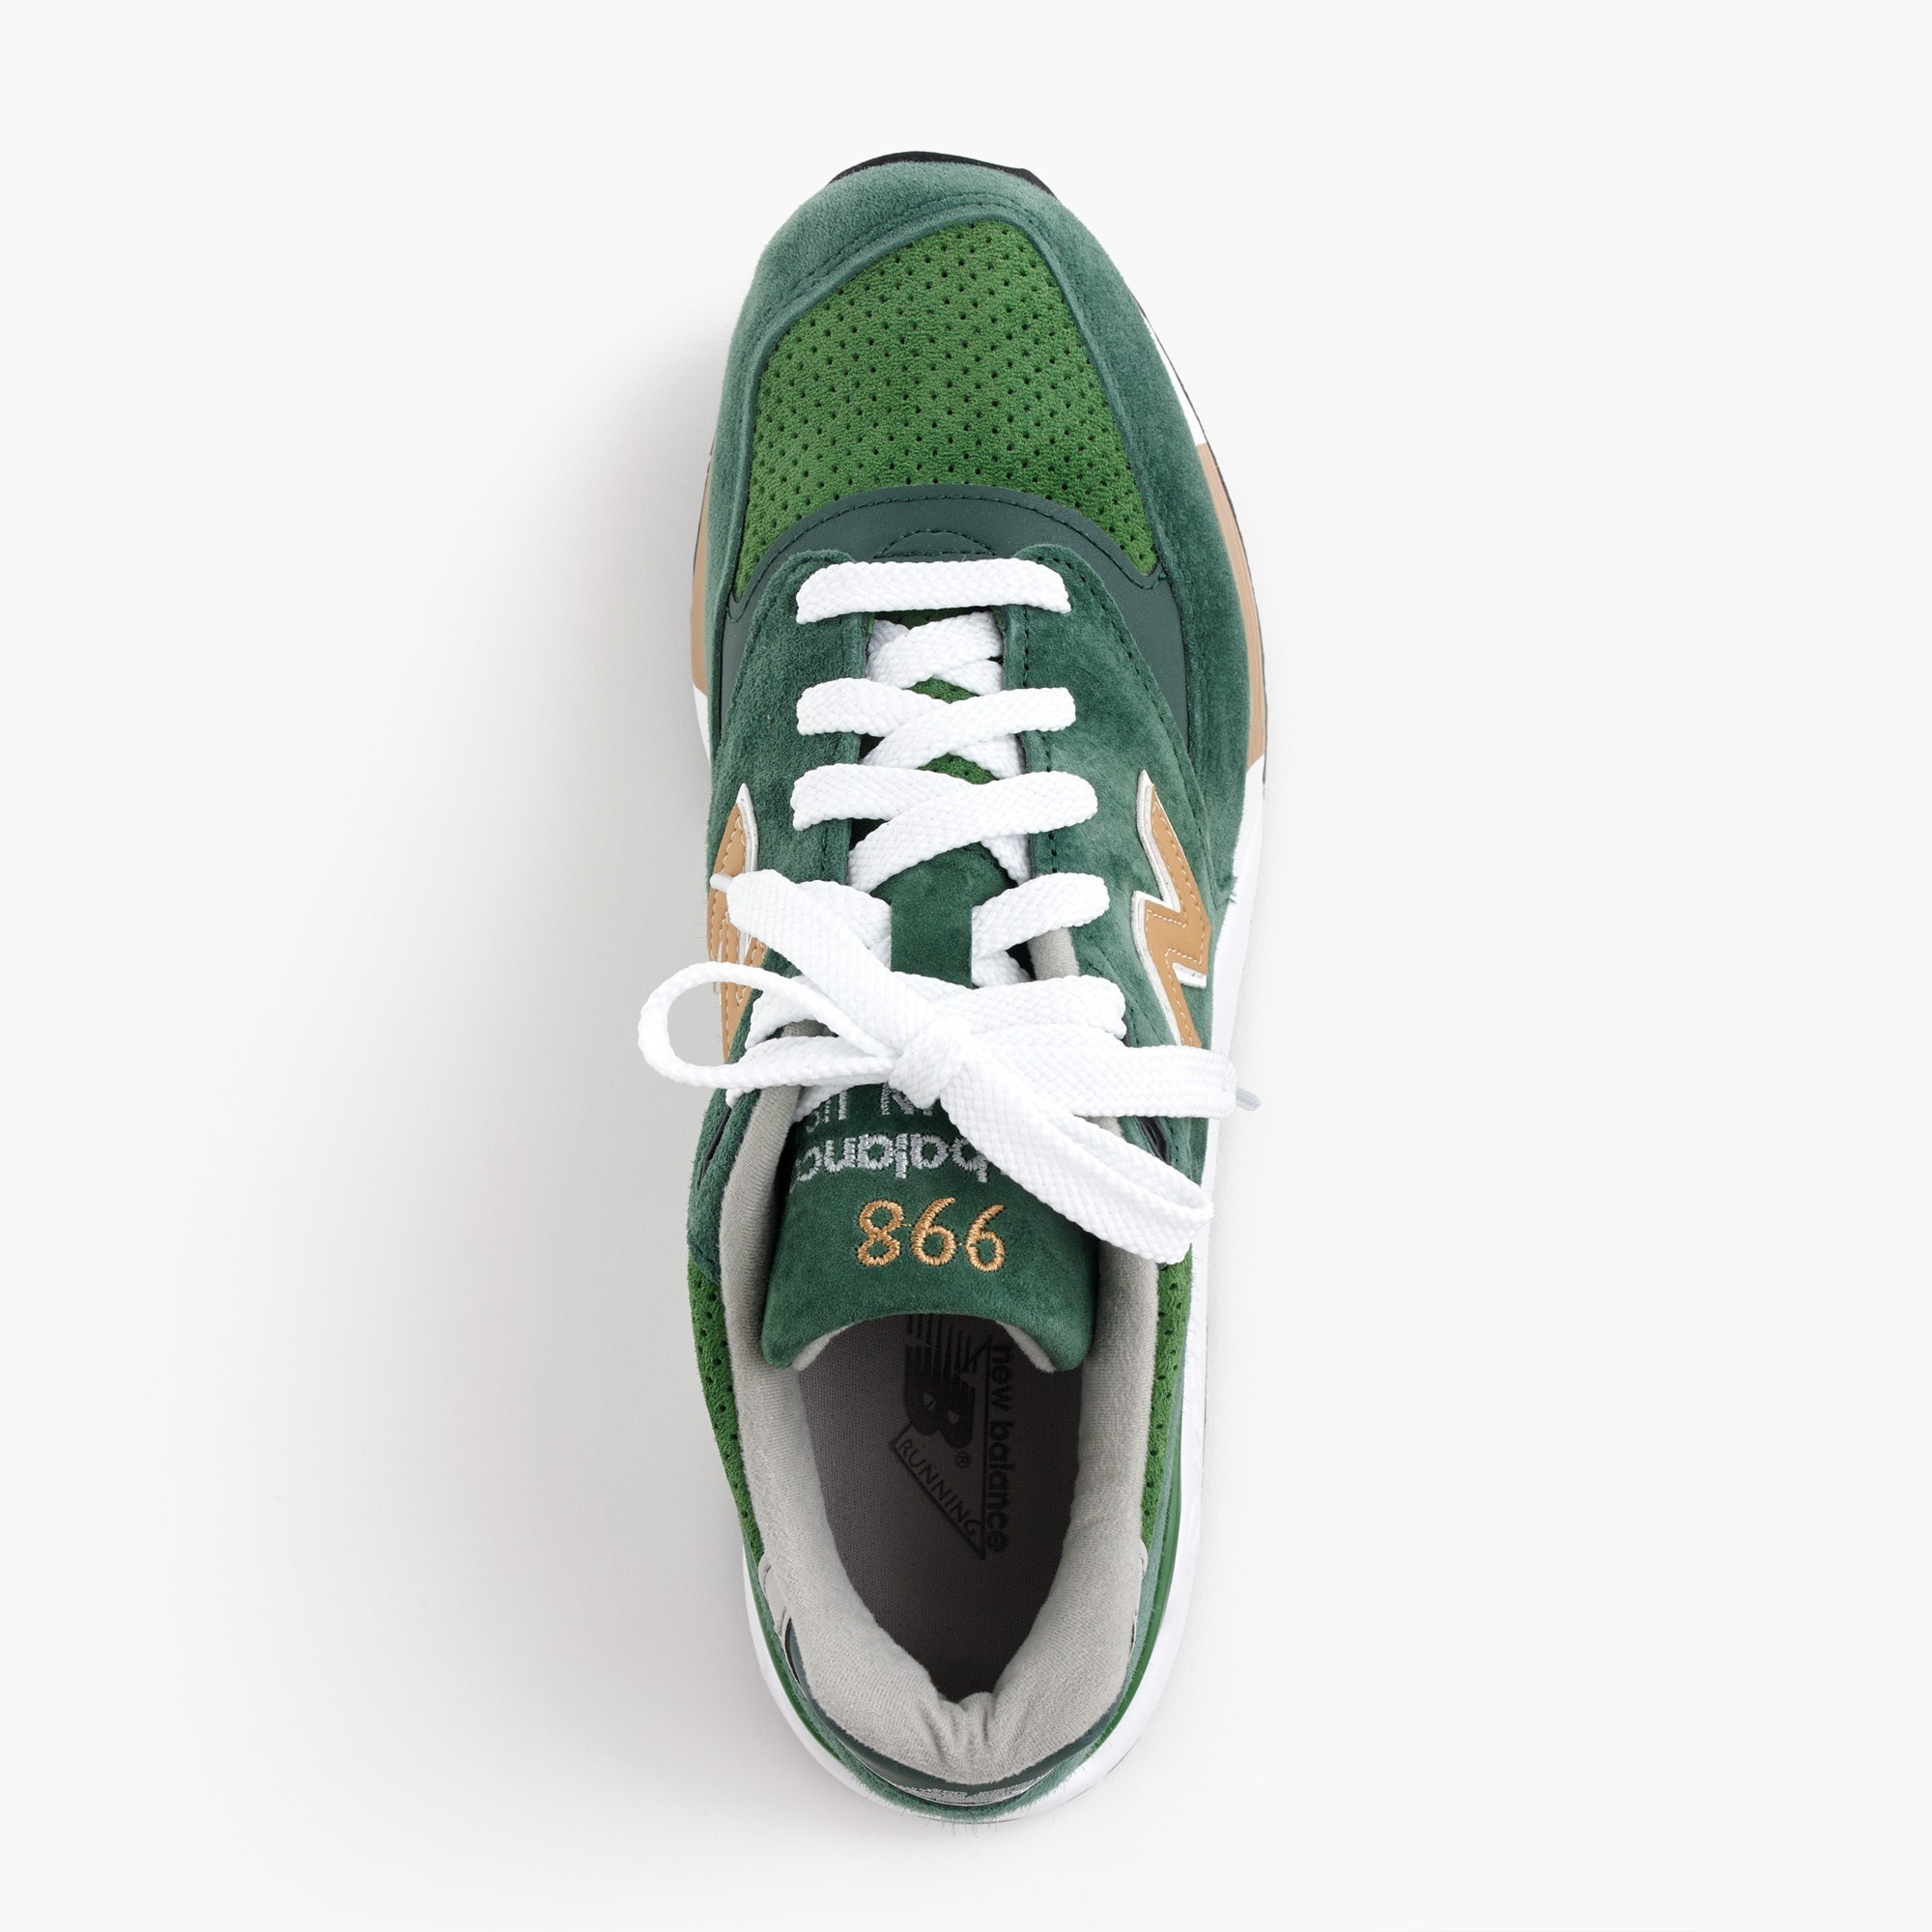 New Balance® for J.Crew 998 Greenback sneakers